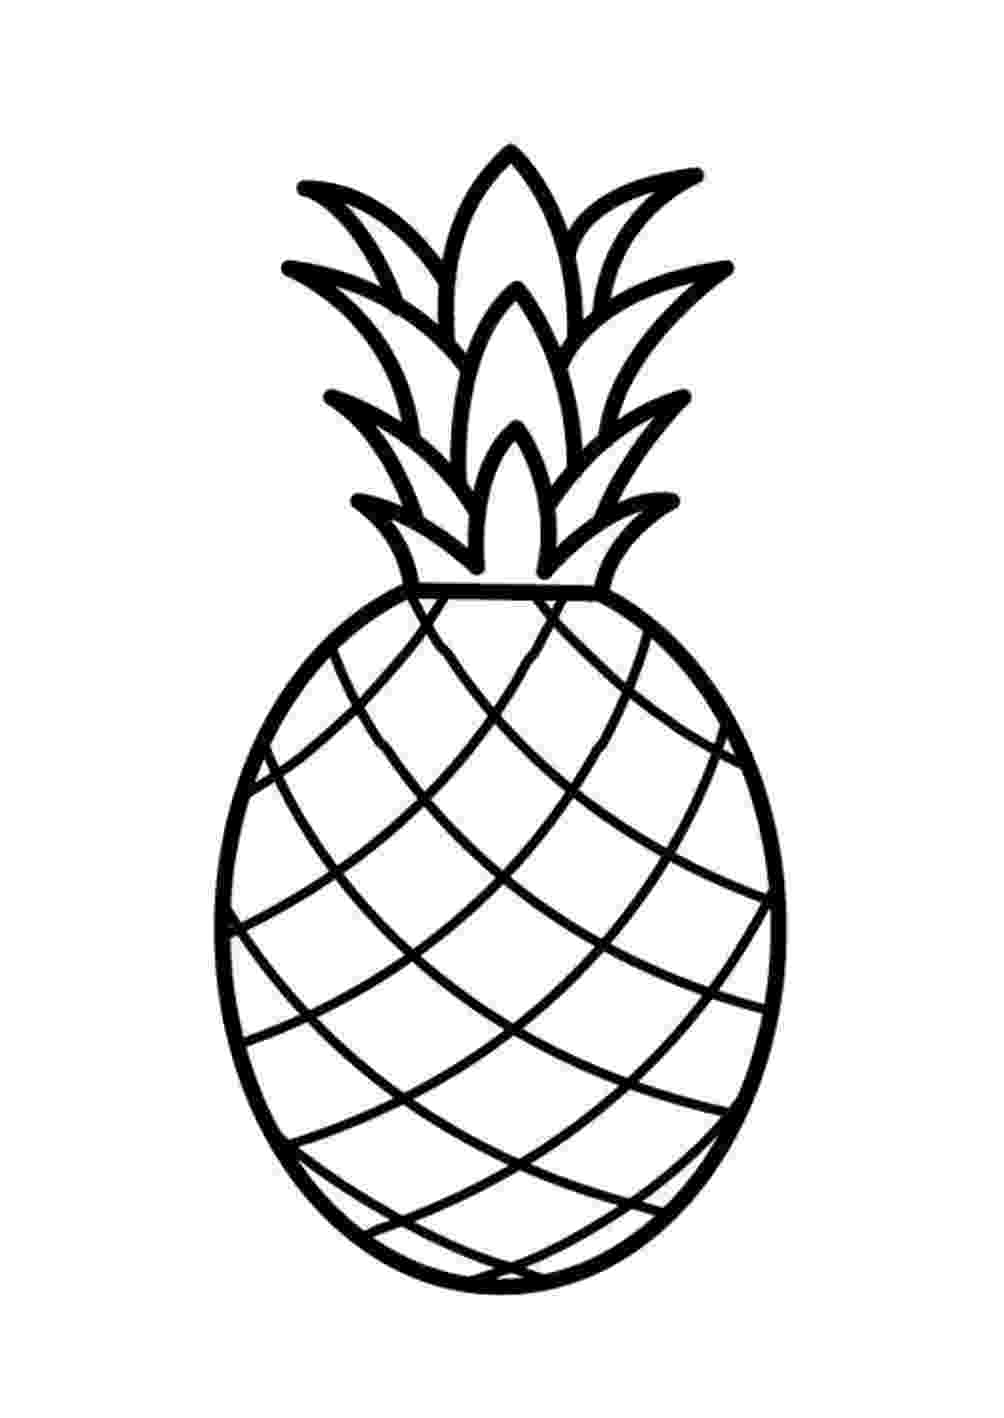 fruit images to color free printable fruit coloring pages for kids fruit to images color